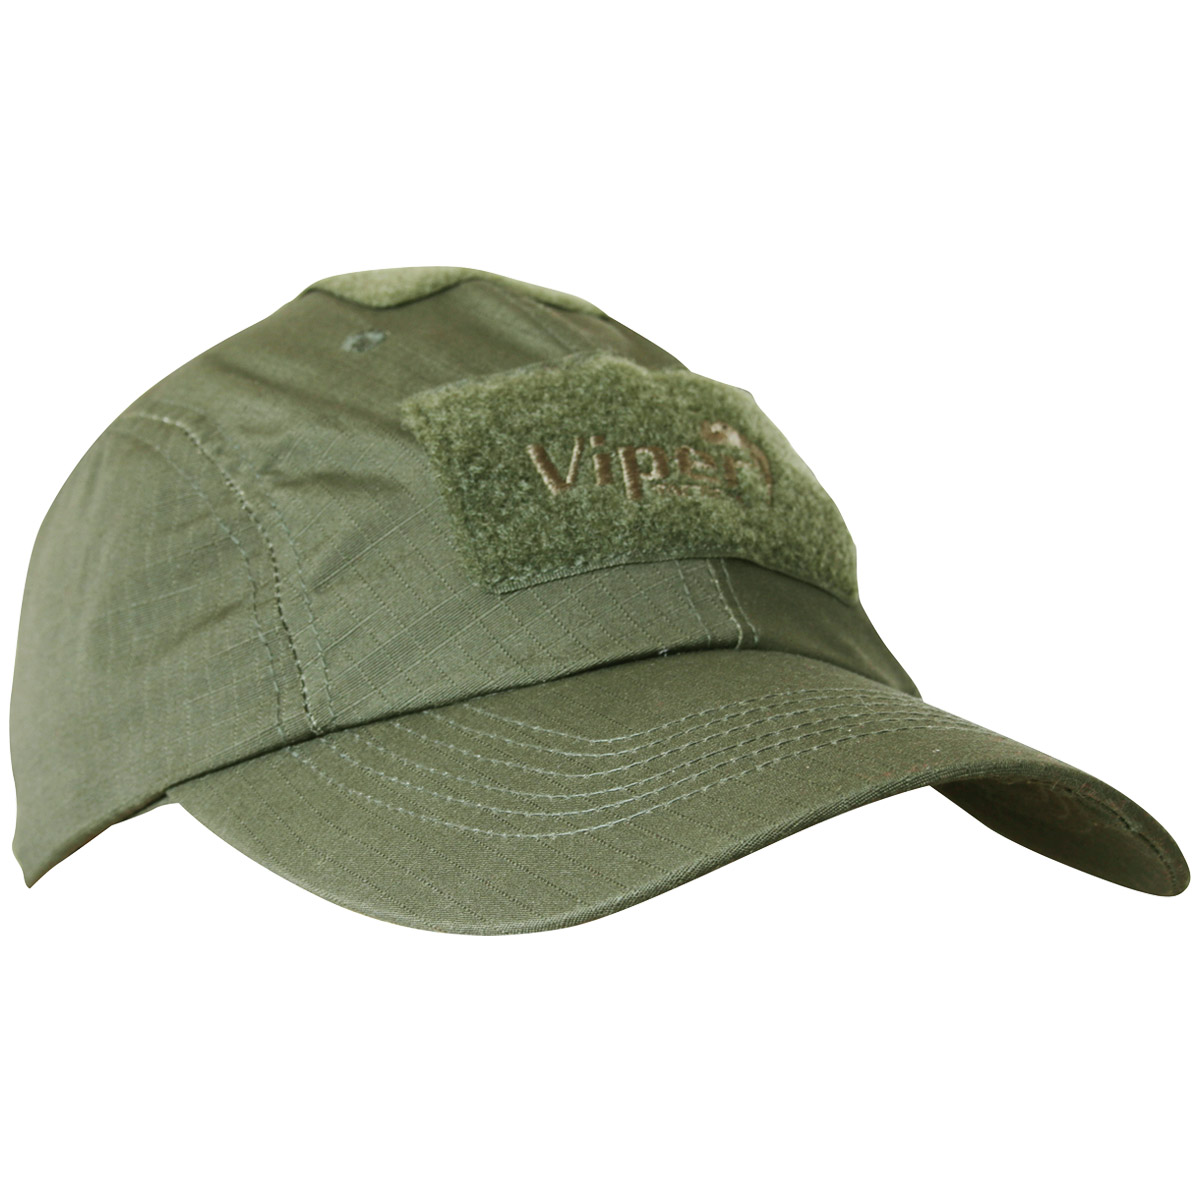 Details about Viper Tactical Elite Military Baseball Cap Operator Sun Hat  Hunting Olive Green c89e9f84428